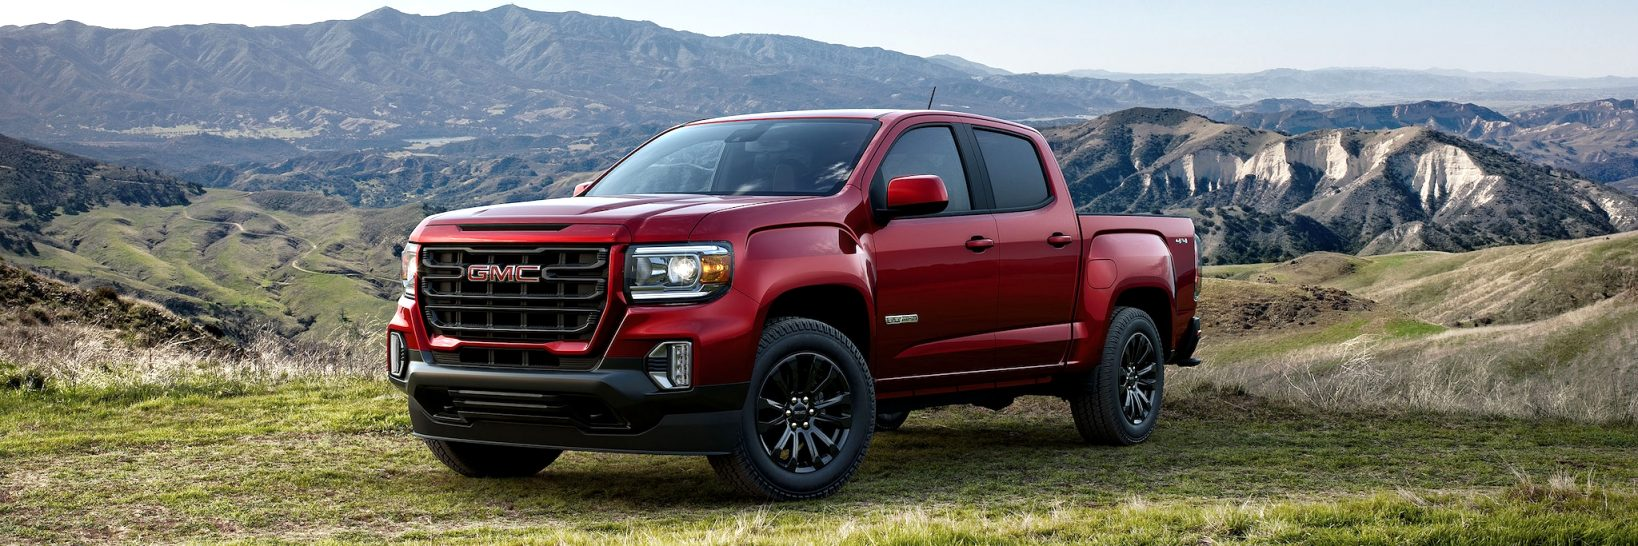 GMC diesel 2021 Specs and Review